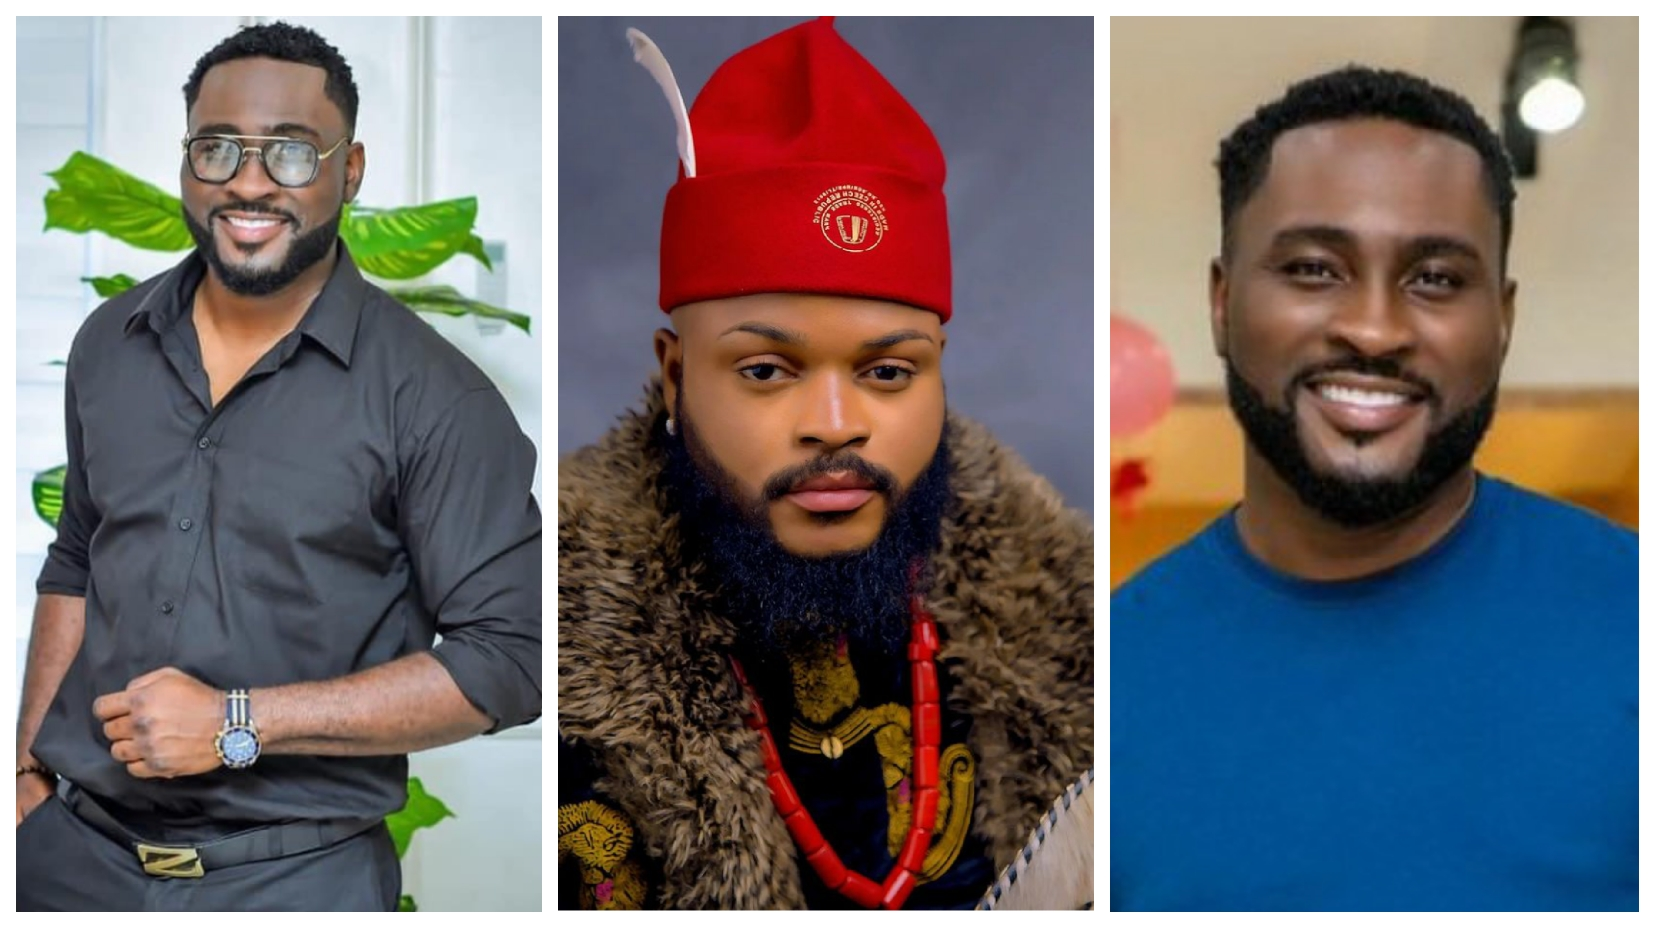 BBNaija: If I emerge as the winner, I would like Pere to become the first runner-up - Whitemoney says